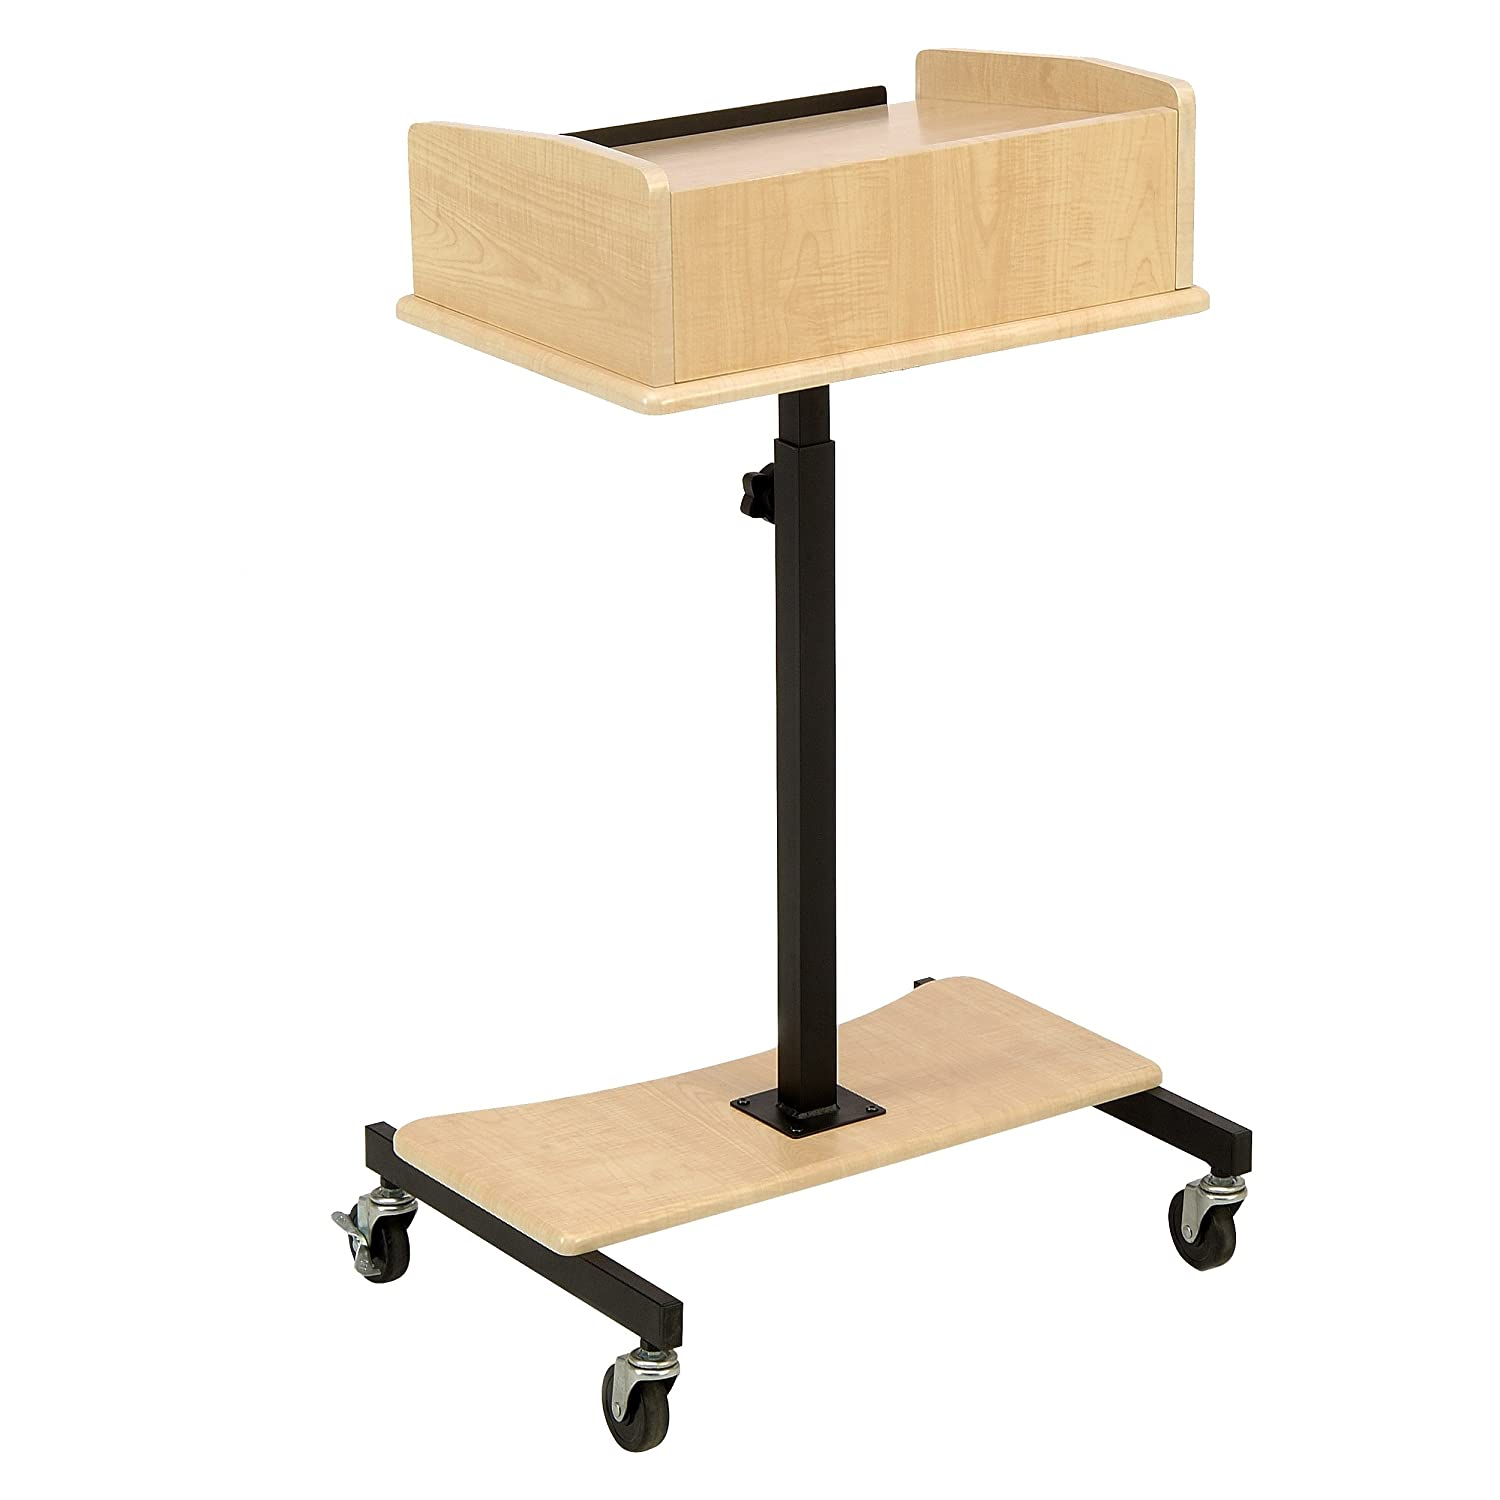 Oklahoma Sound LSS-FM Adjustable Laptop Speaker Stand Fusion Maple 24 Length x 24 Width x 39-40 Height